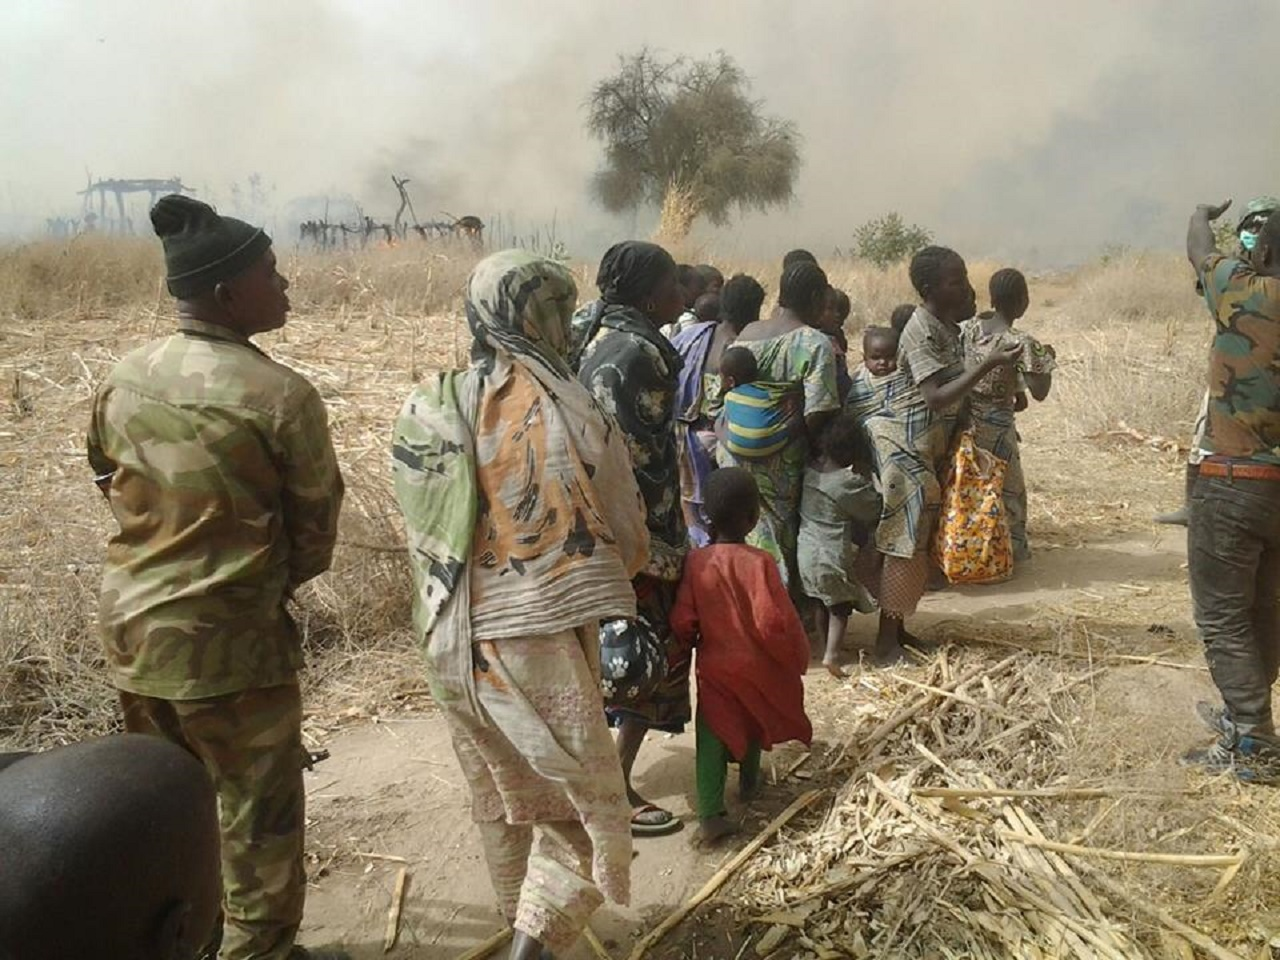 boko haram The unicef reports that one in five suicide bombers used by boko haram has been a child find out more about boko haram attacks and their impact on nigeria.